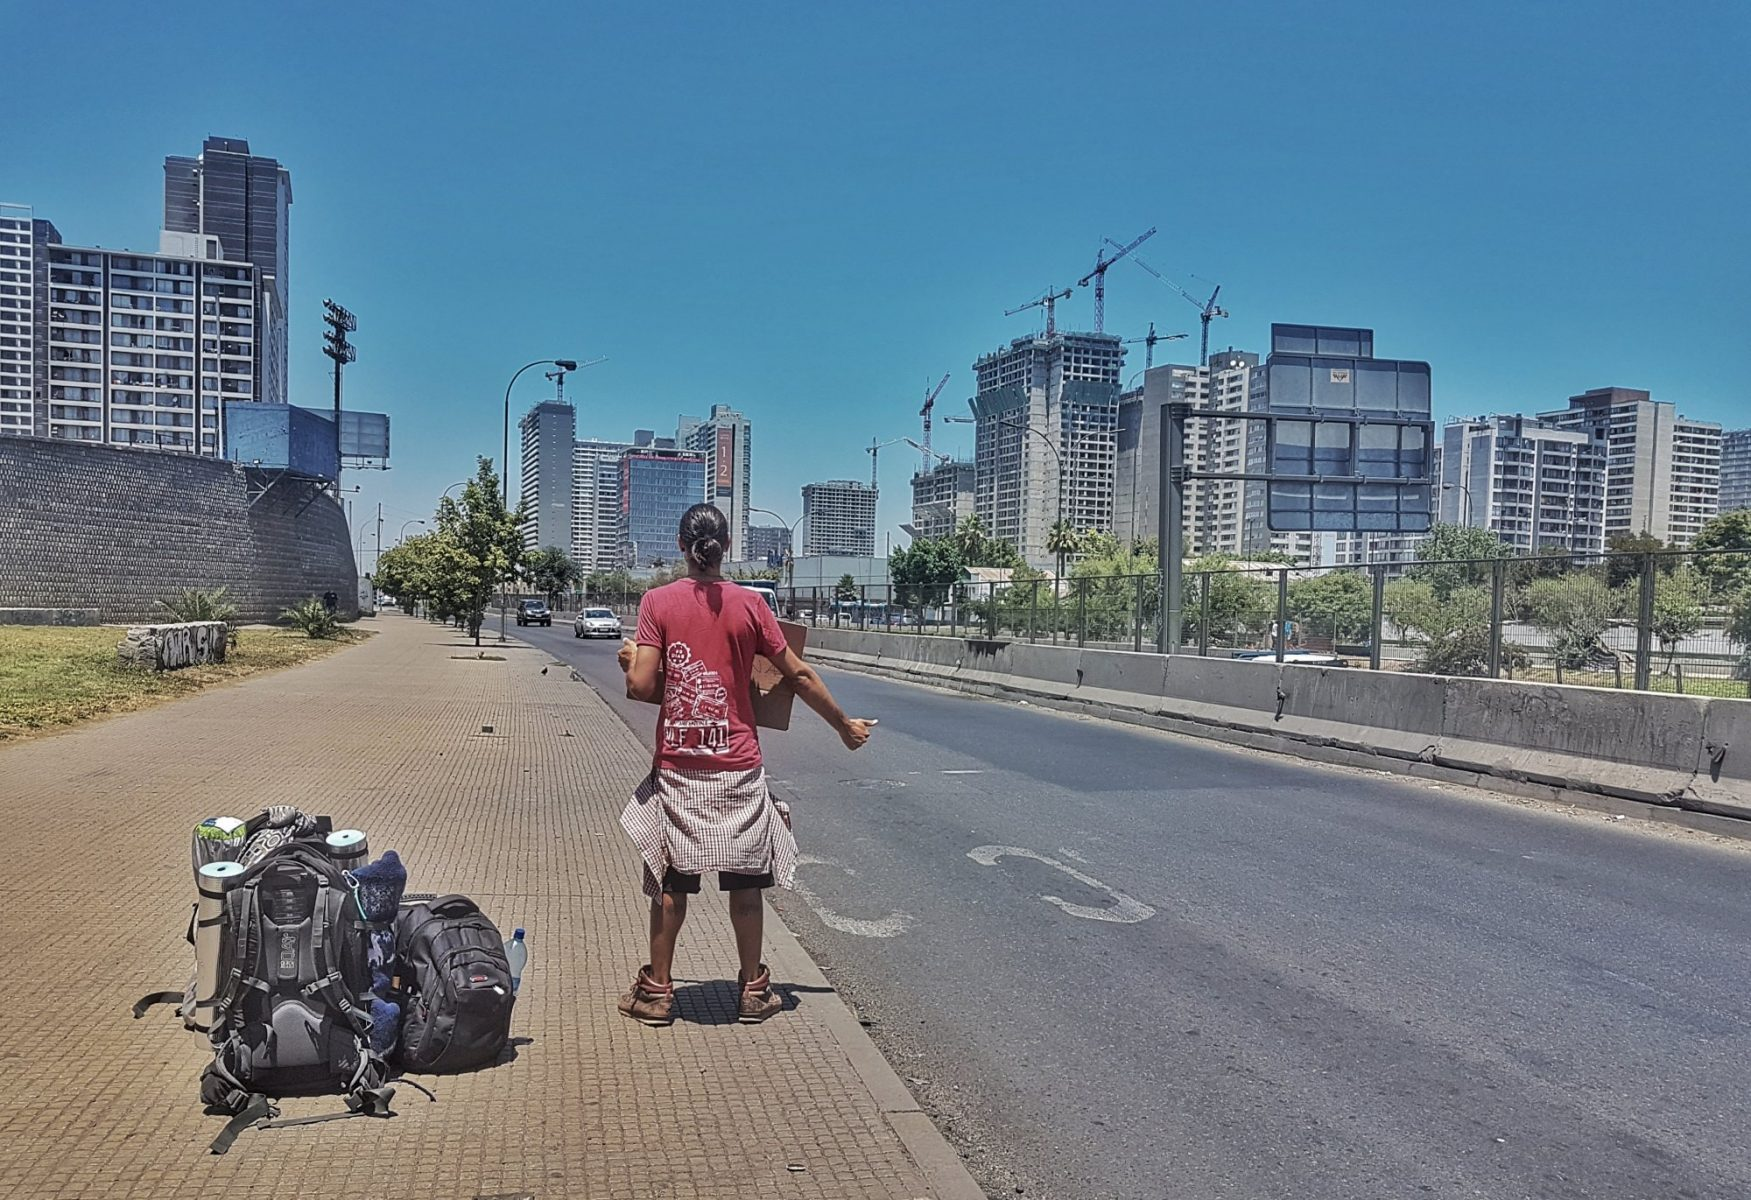 "<img src=""images/"" width=""800"" height=""600"" alt=""mendoza - 20180111 133812 01 01985508712 - Chile: Hitchhiking From Chile's Santiago to Argentina's Mendoza. "">"